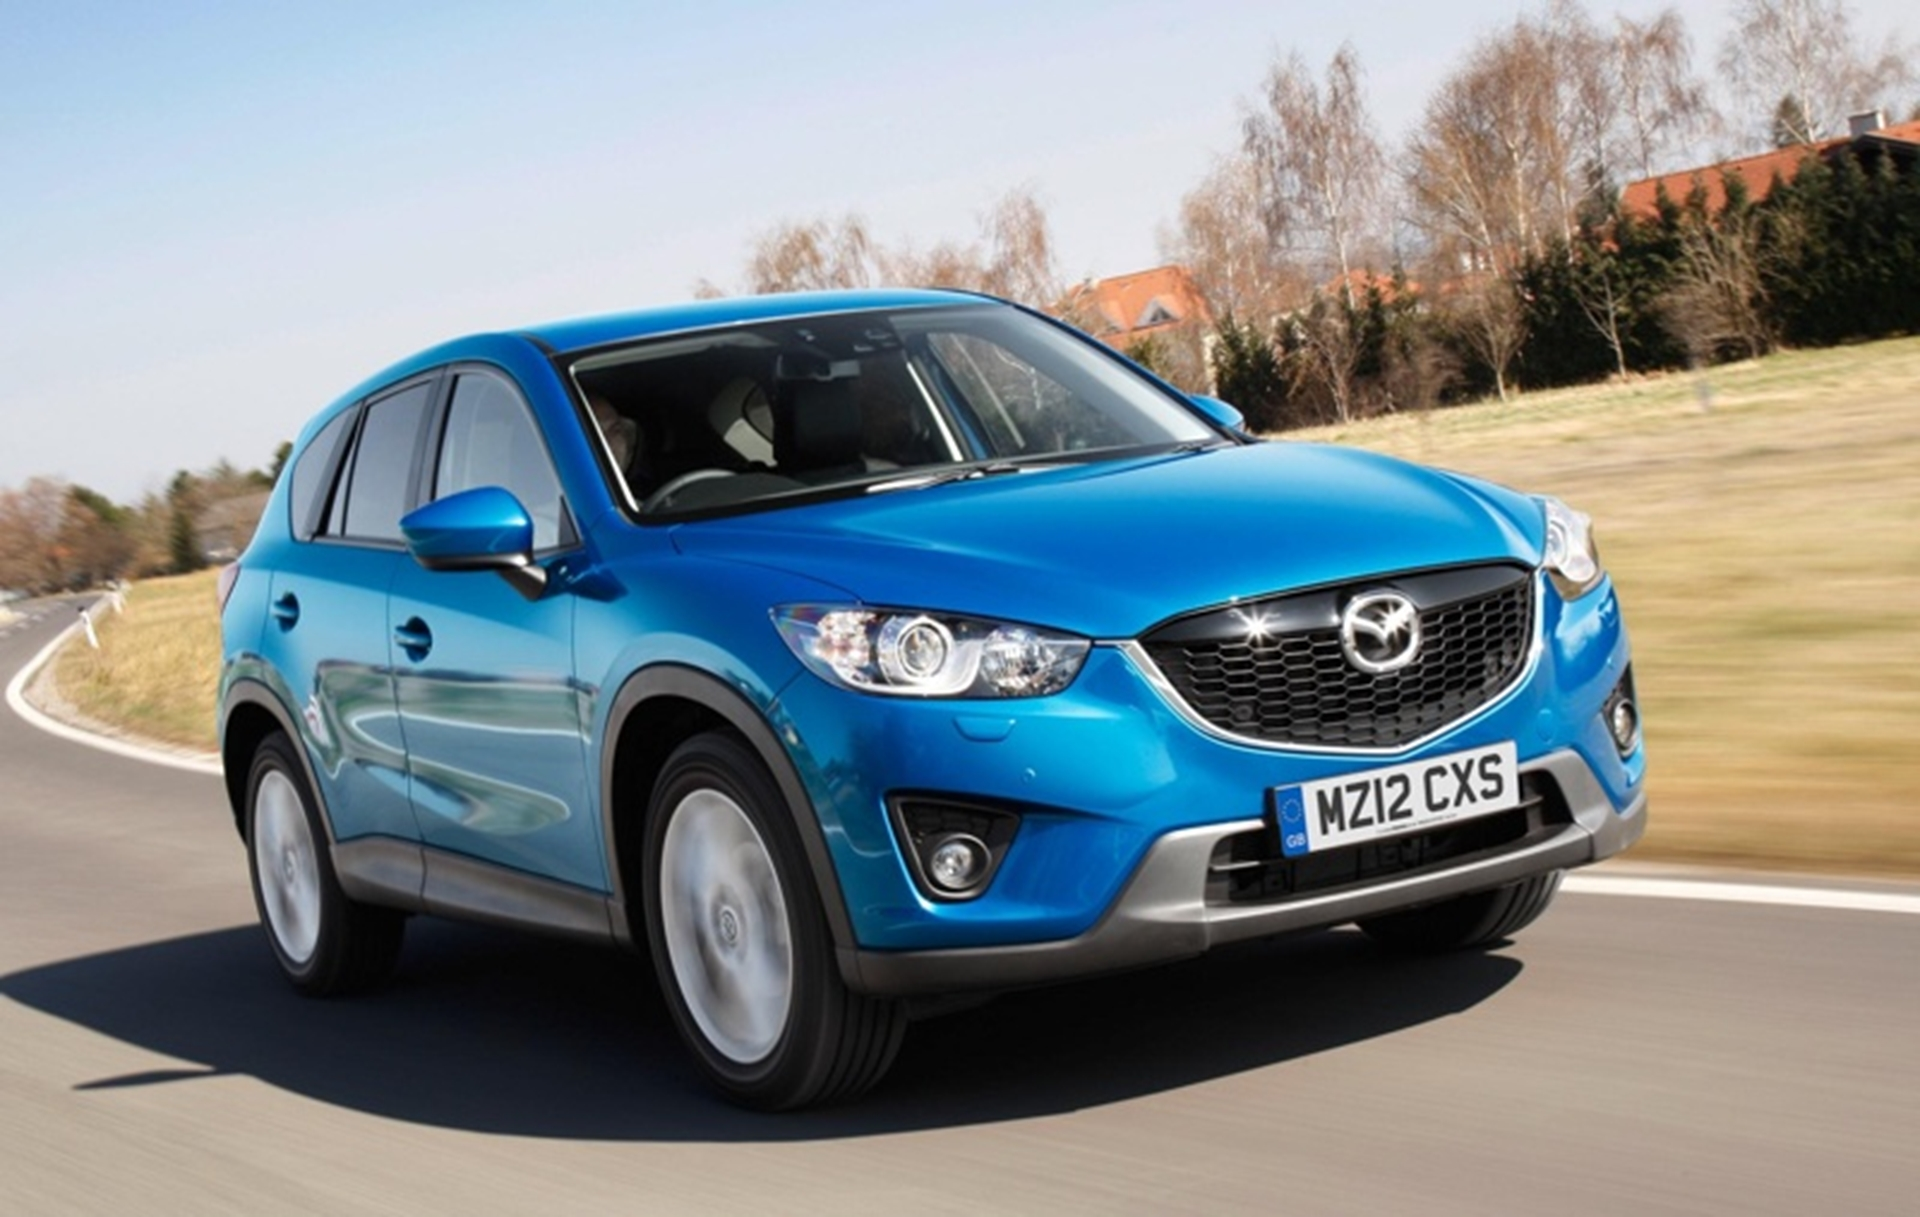 U201cWe Believe That The Mazda CX 5 Will Bring New Customers To Mazda. The  Compact SUV Segment Is One That Is Growing U2013 Sales Grew By 38.5 Percent  Year On Year ...